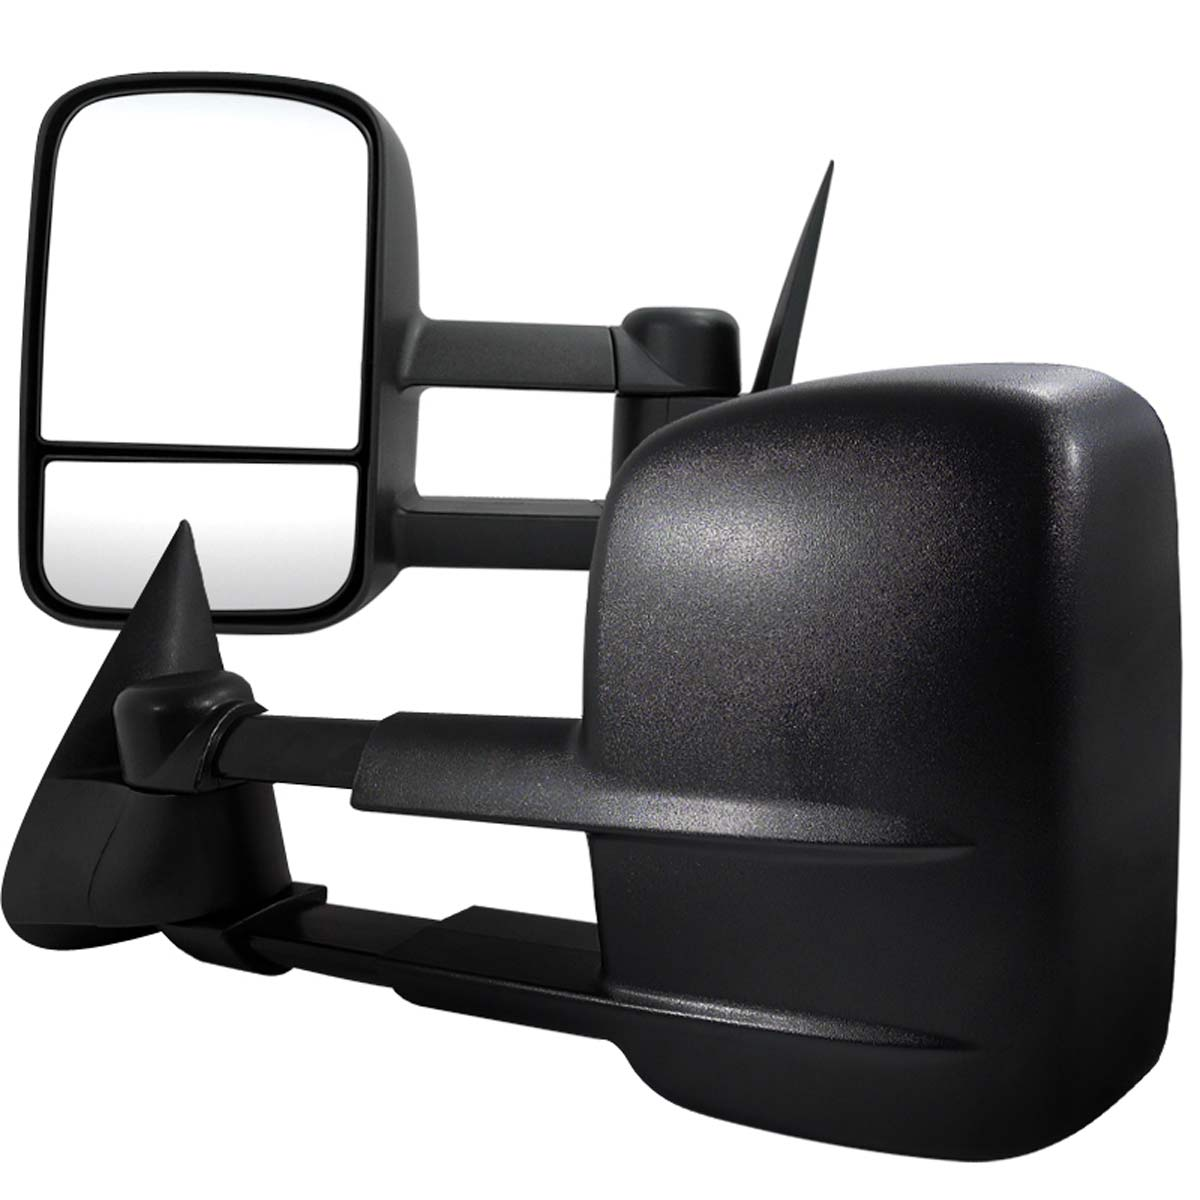 2002 chevy avalanche side mirror replacement